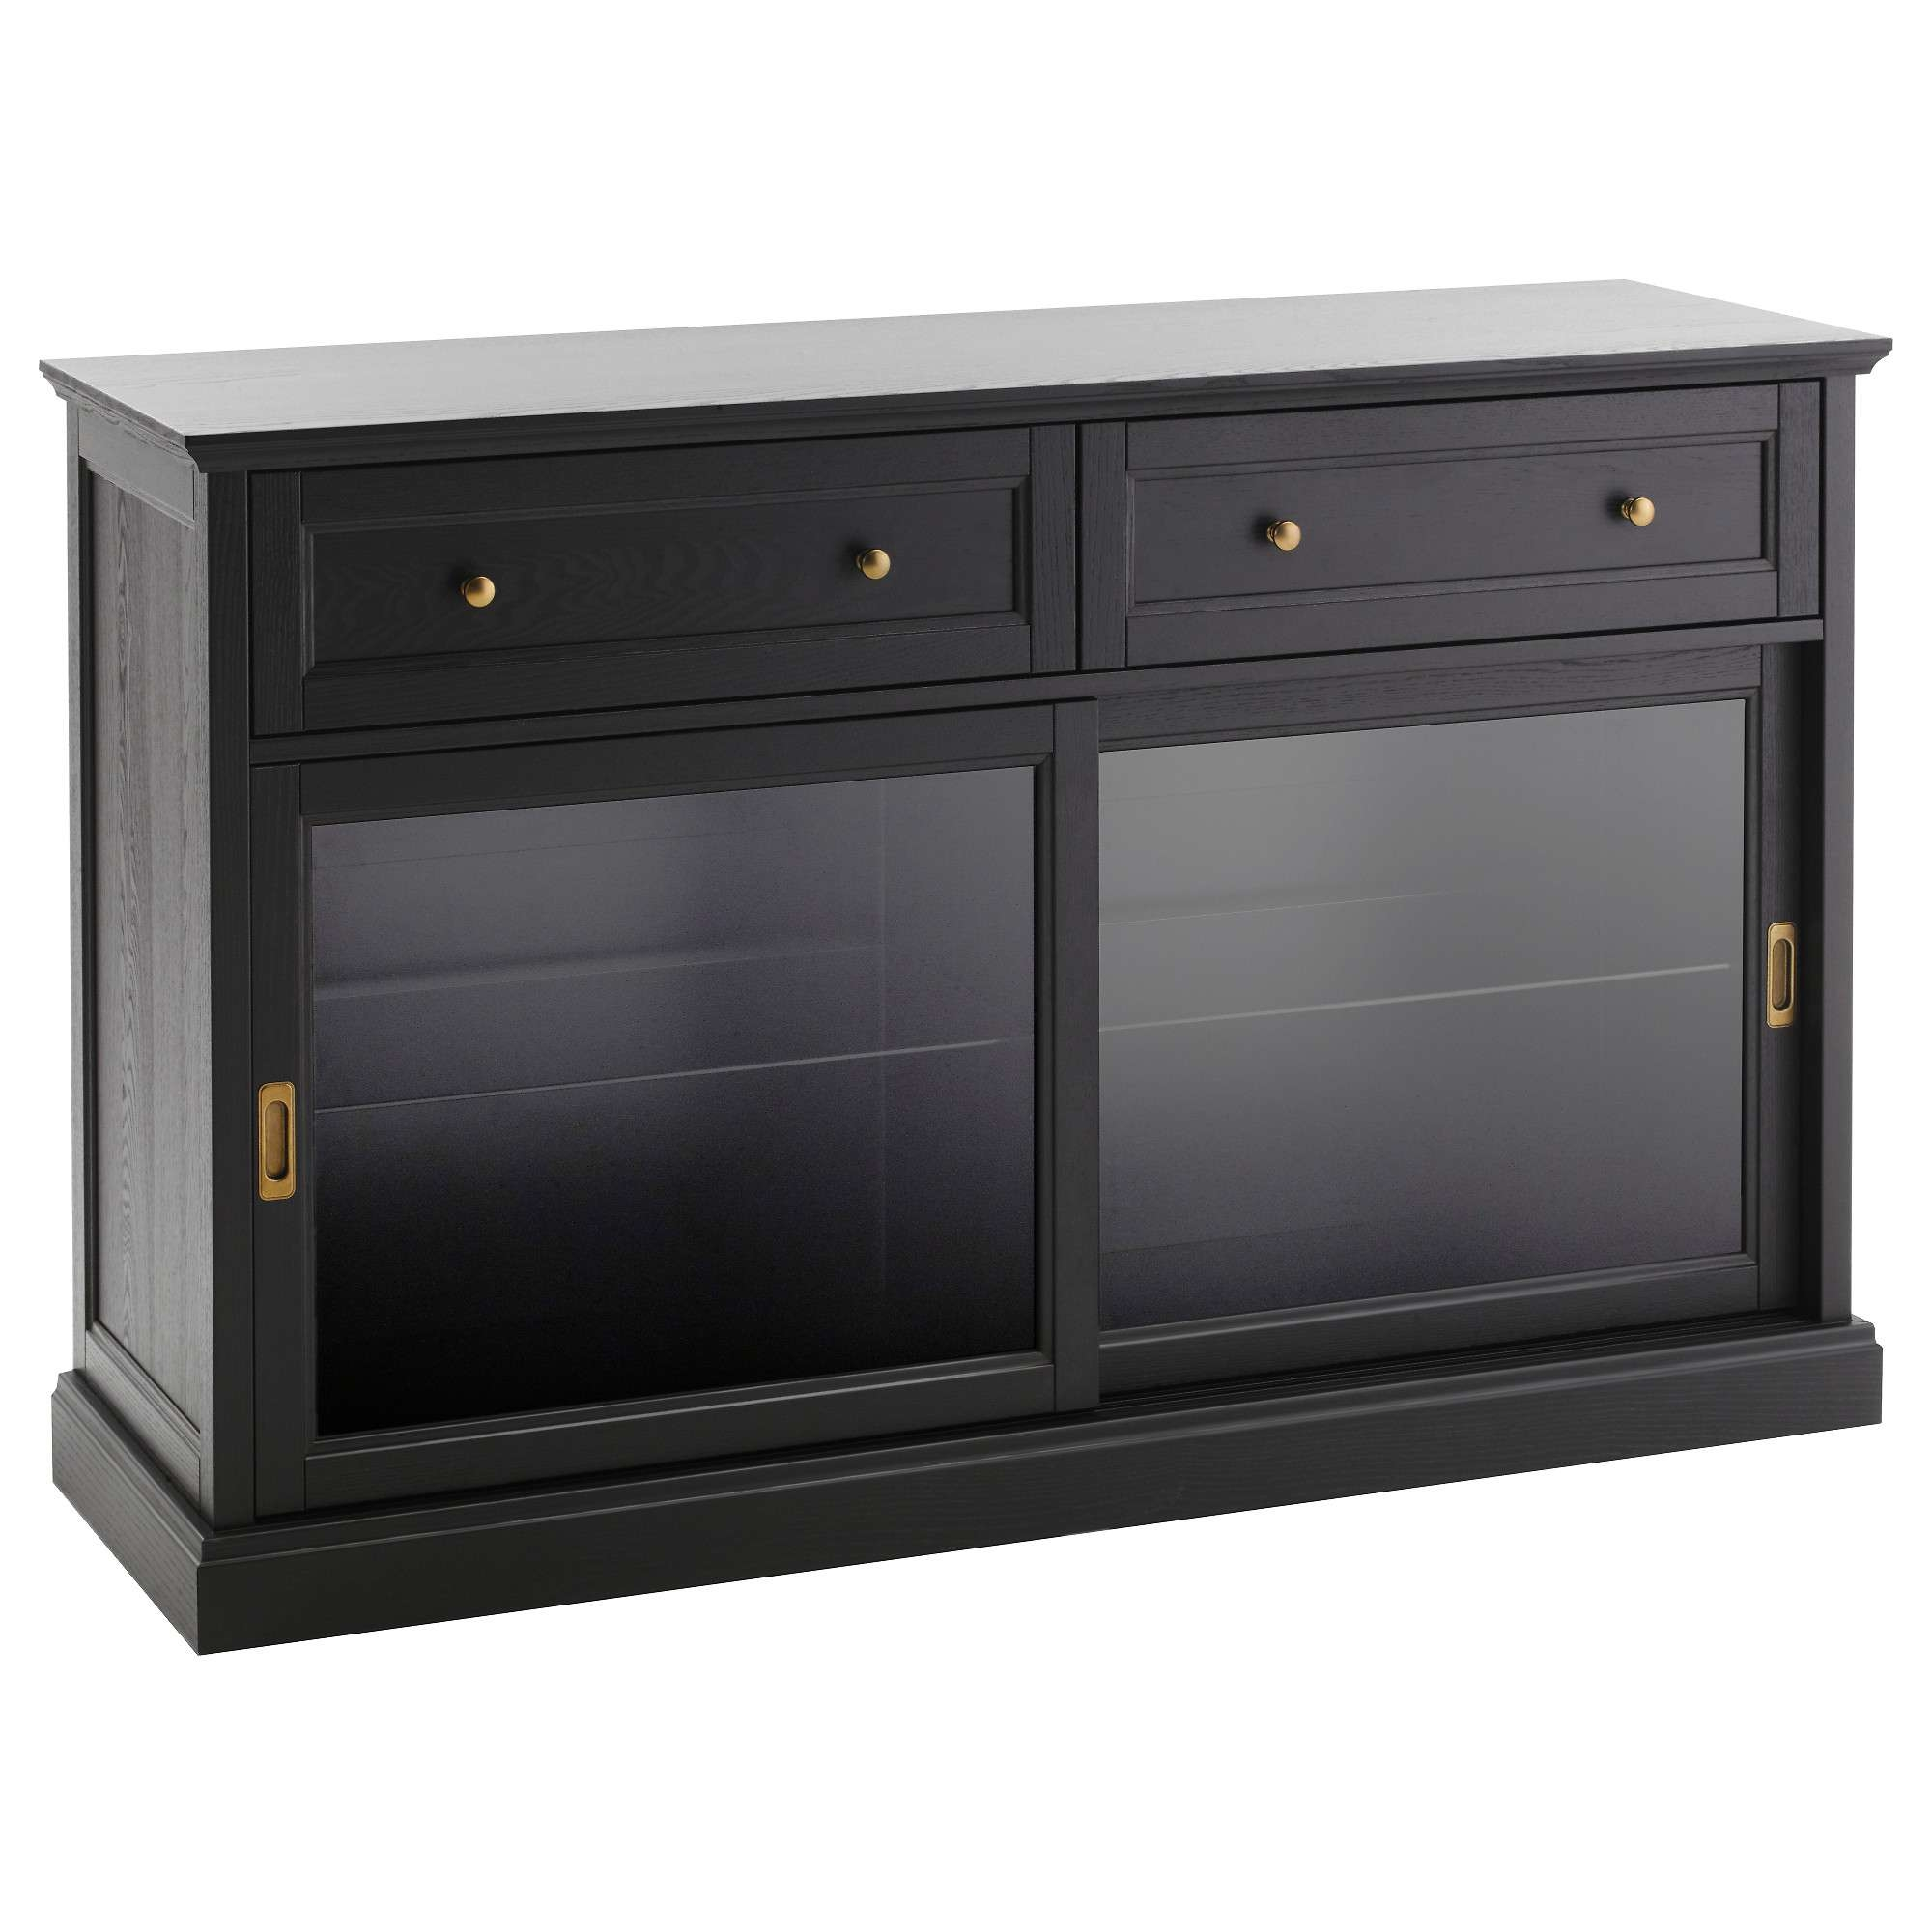 Cabinets And Sideboards – Dining Room – Ikea Inside Sydney Sideboards And Buffets (View 2 of 20)